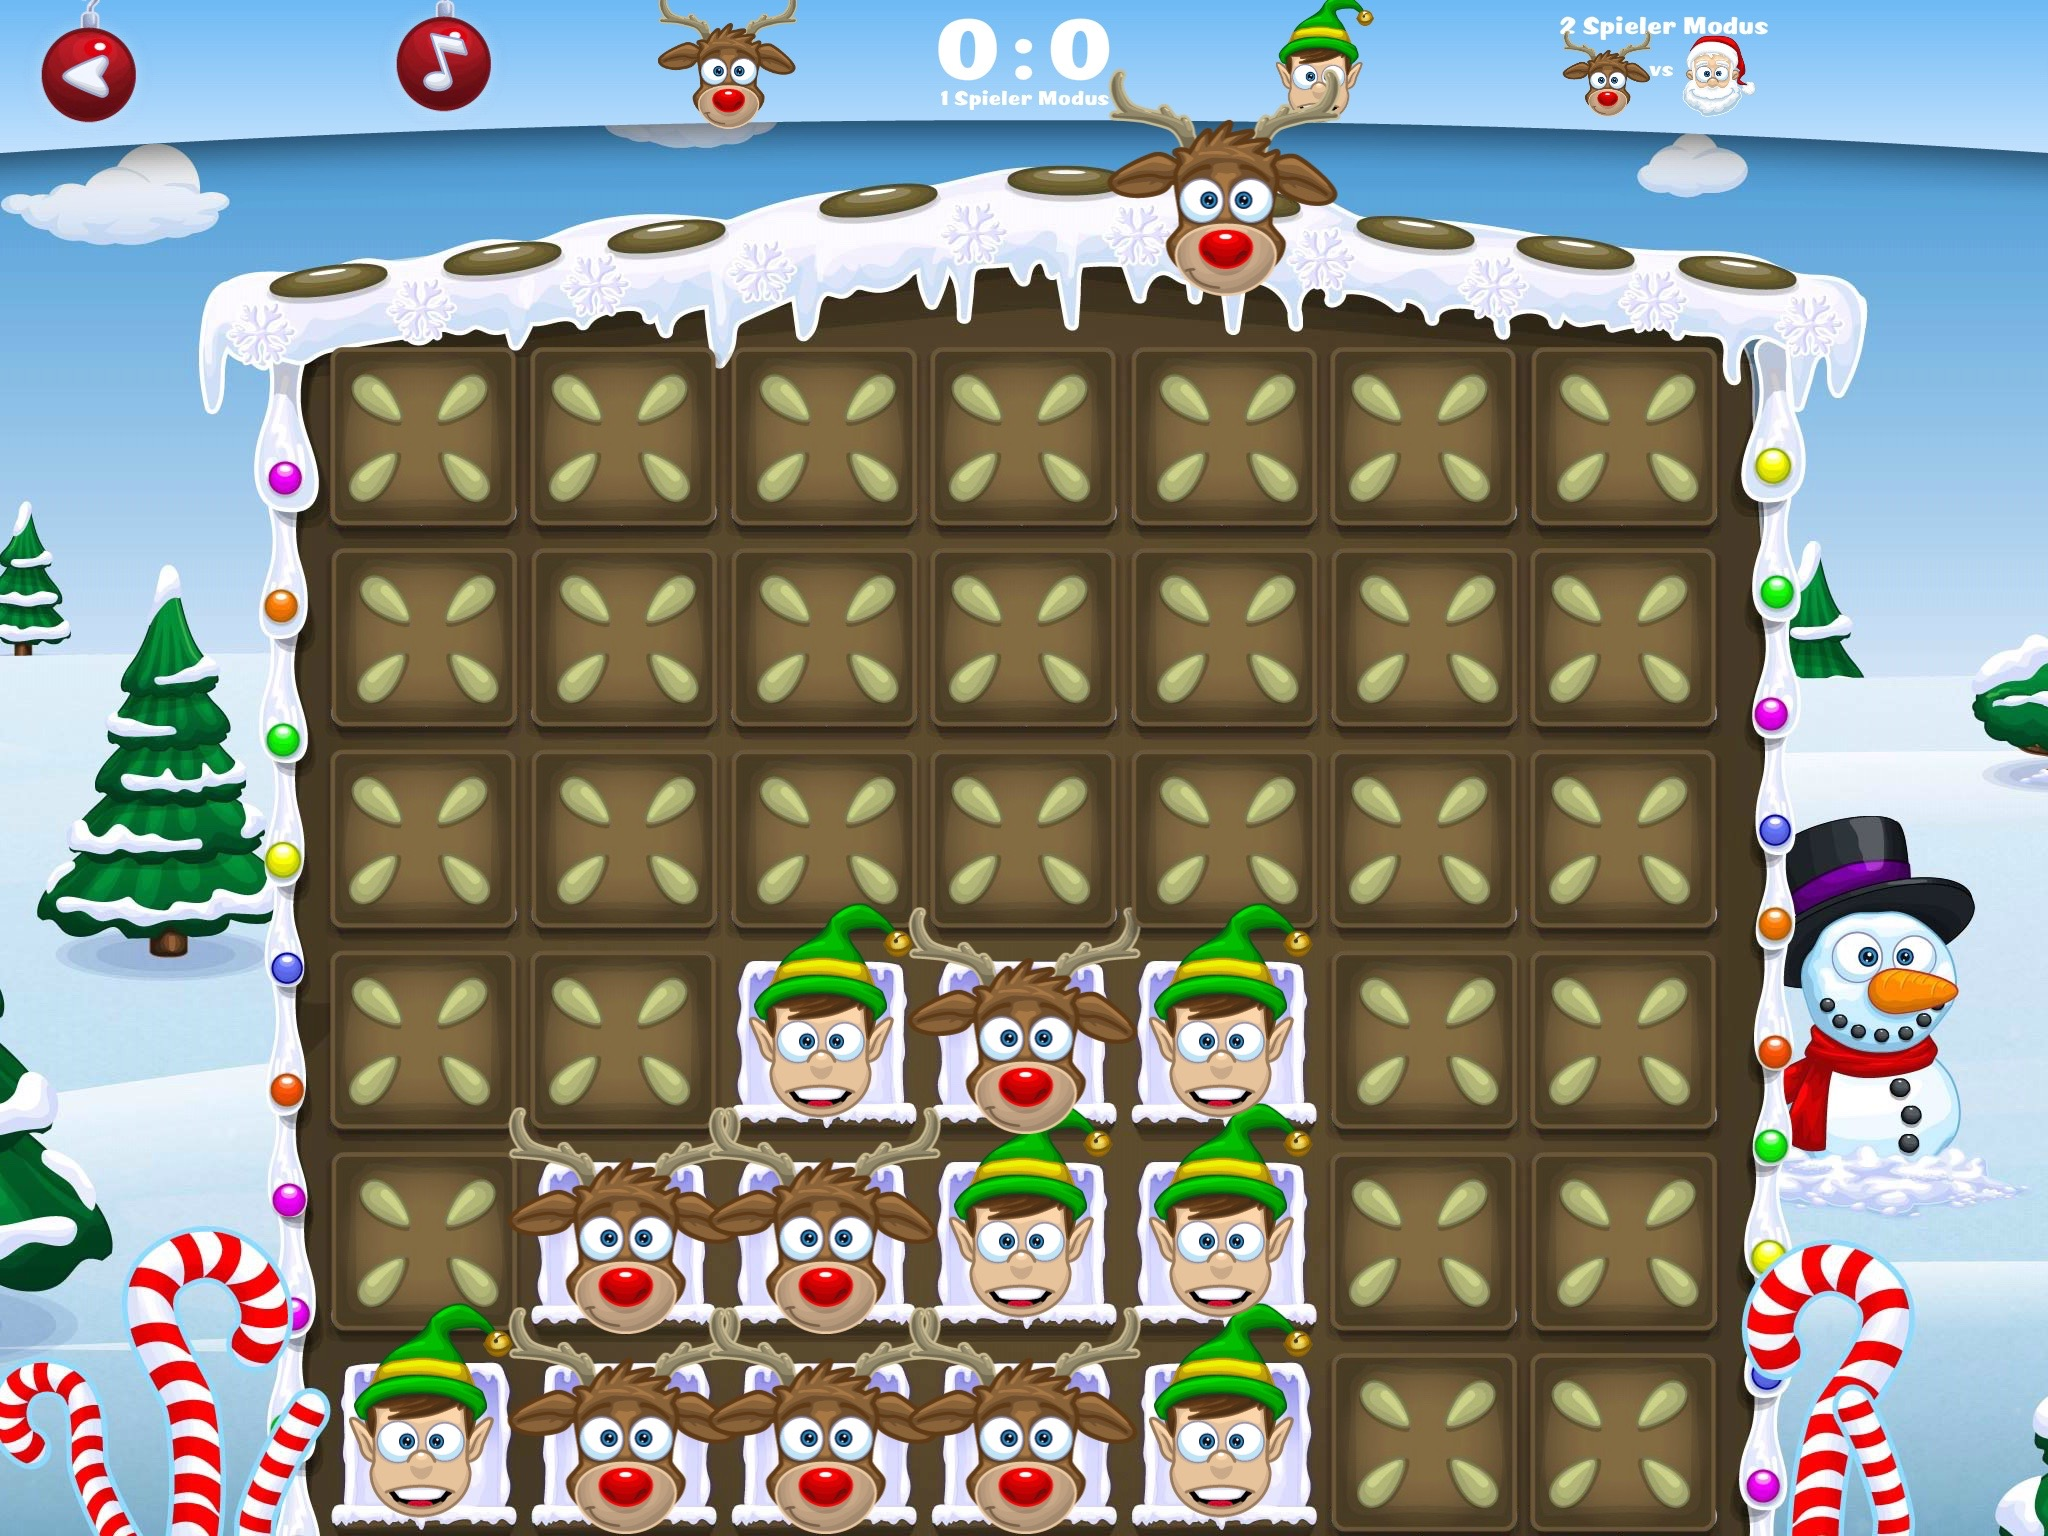 Feiertag_2_App_For_Kinder_Jan_Essig_XMAS_Games_3